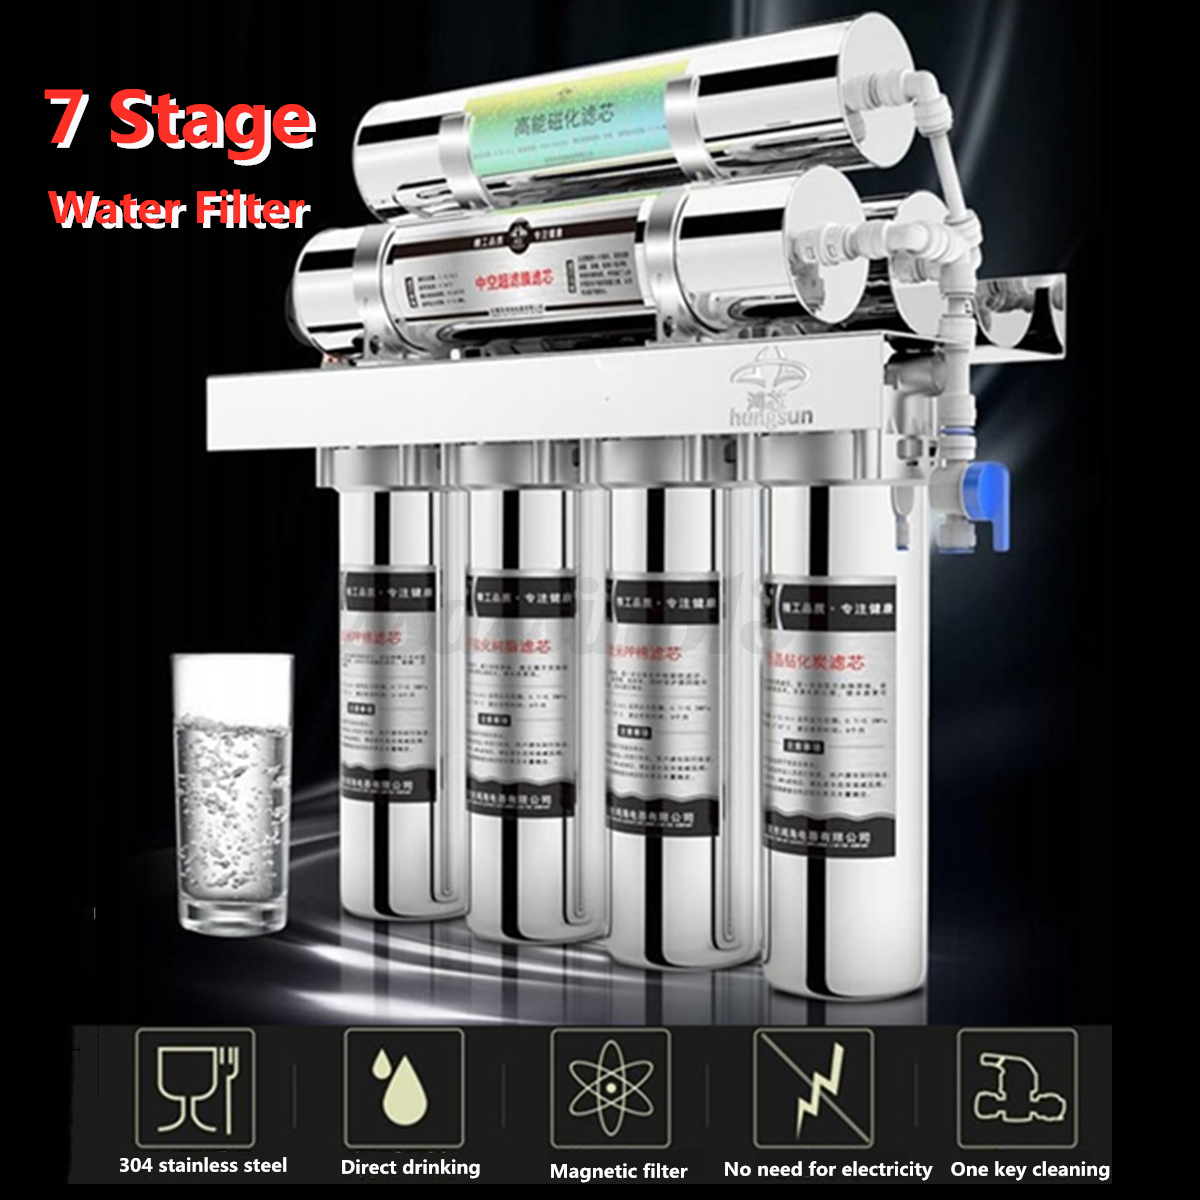 7 Stage Water Filter System With Faucet Valve Home Kitchen P